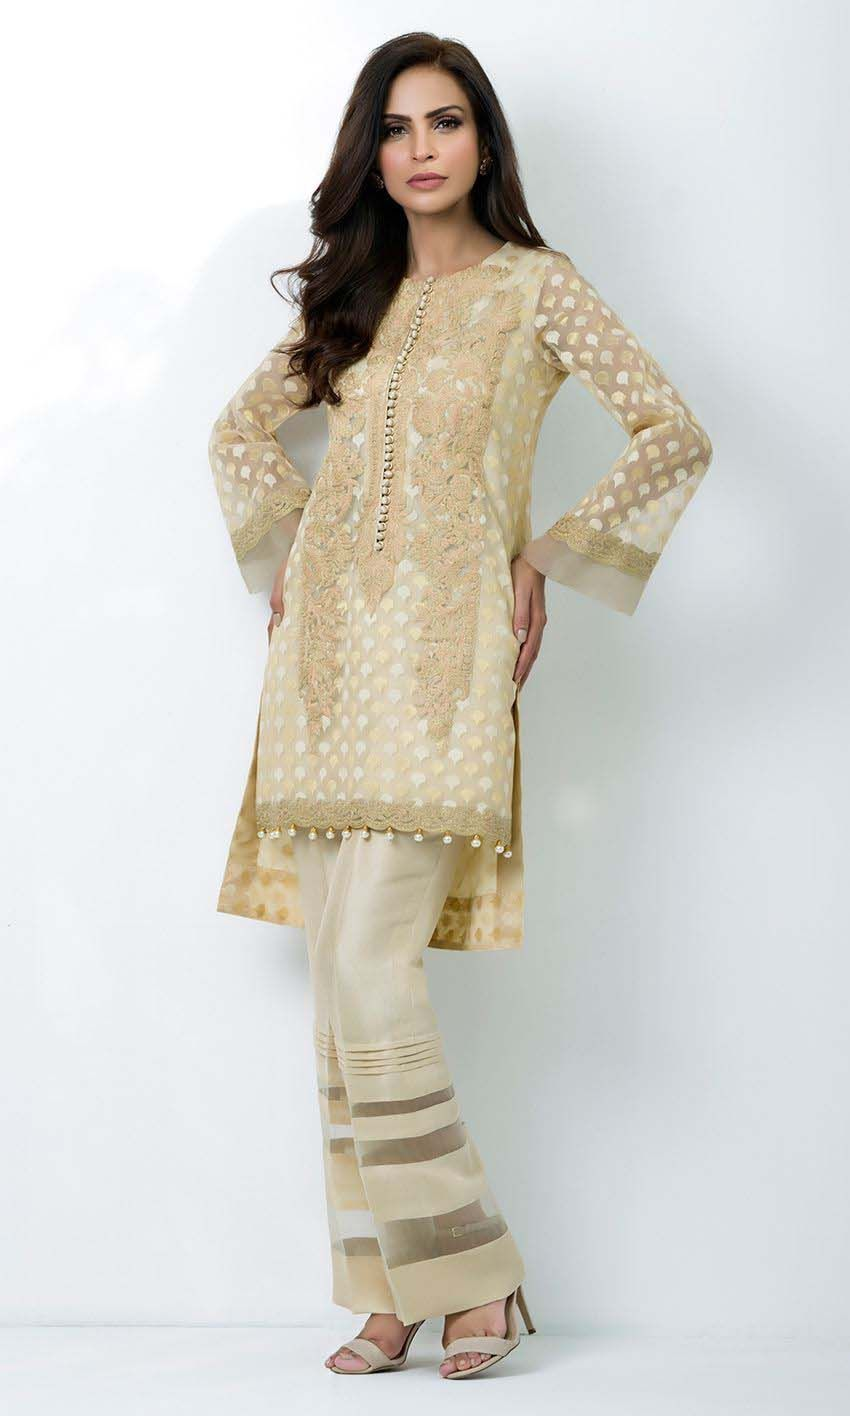 to wear - Ansari Nomi floral lawn prints collection video